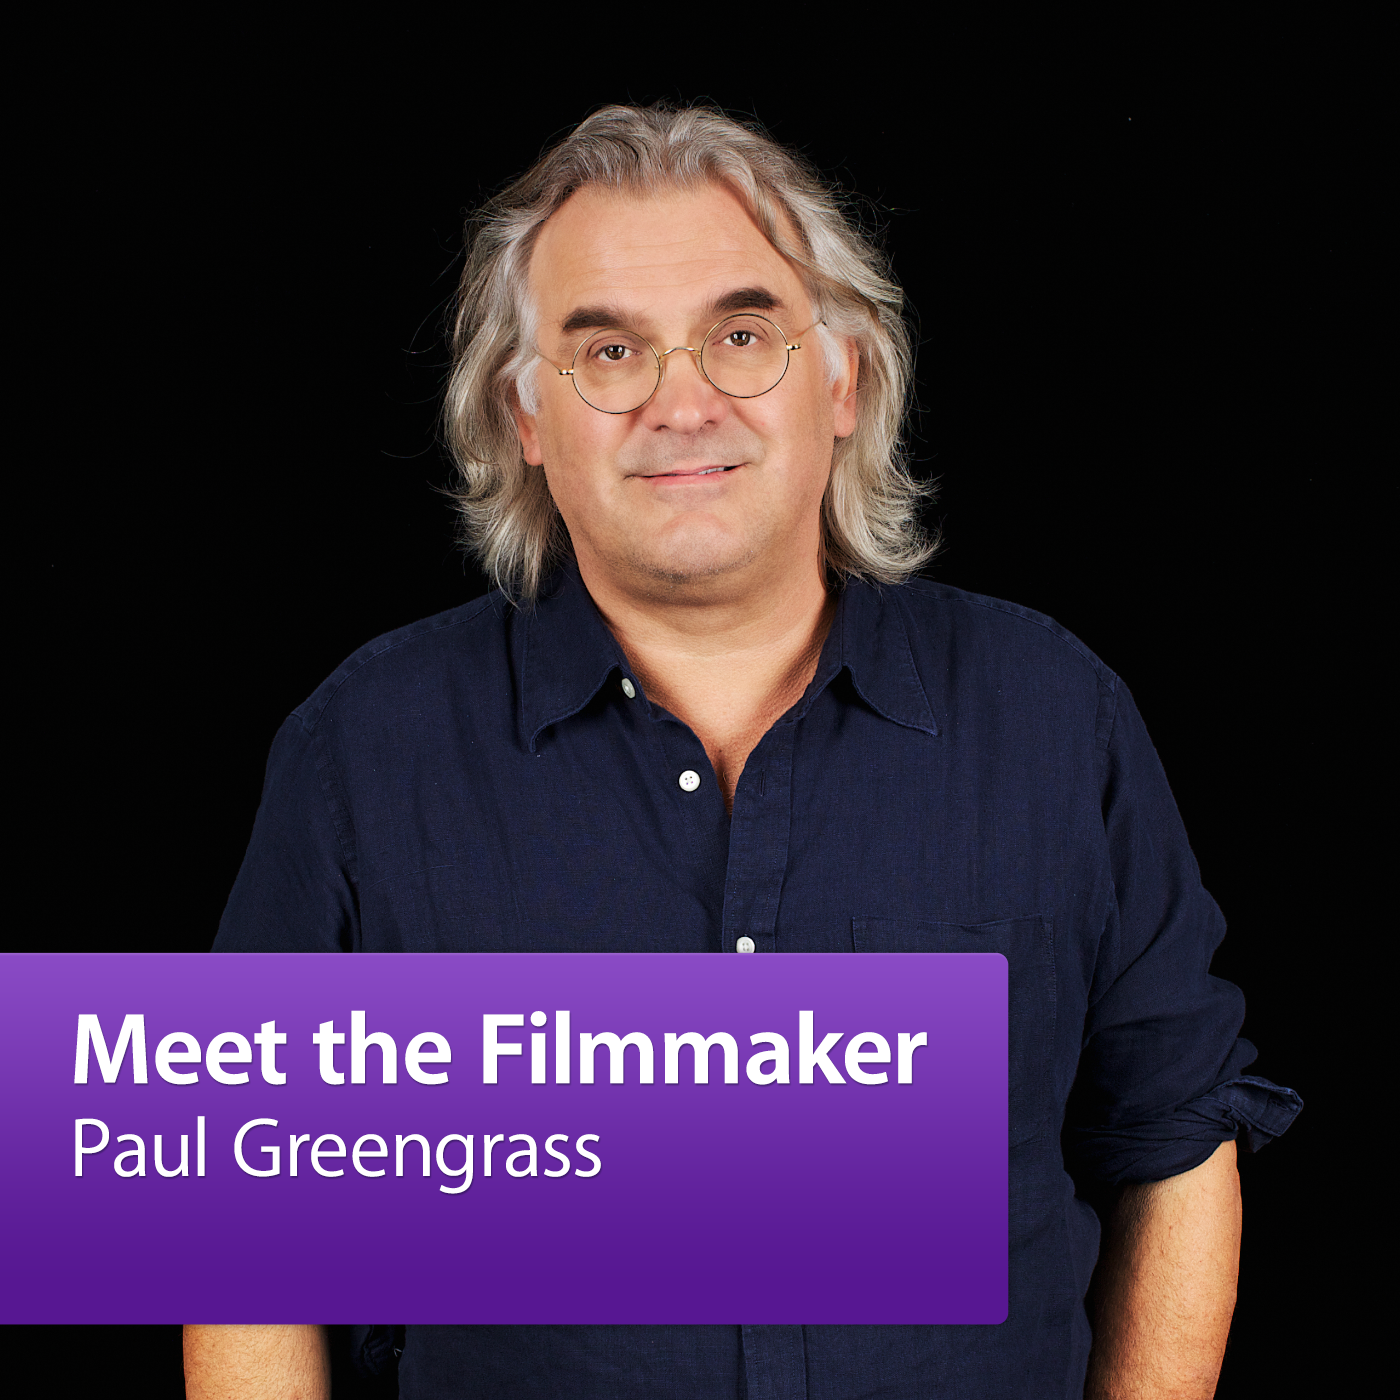 Paul Greengrass: Meet the Filmmaker